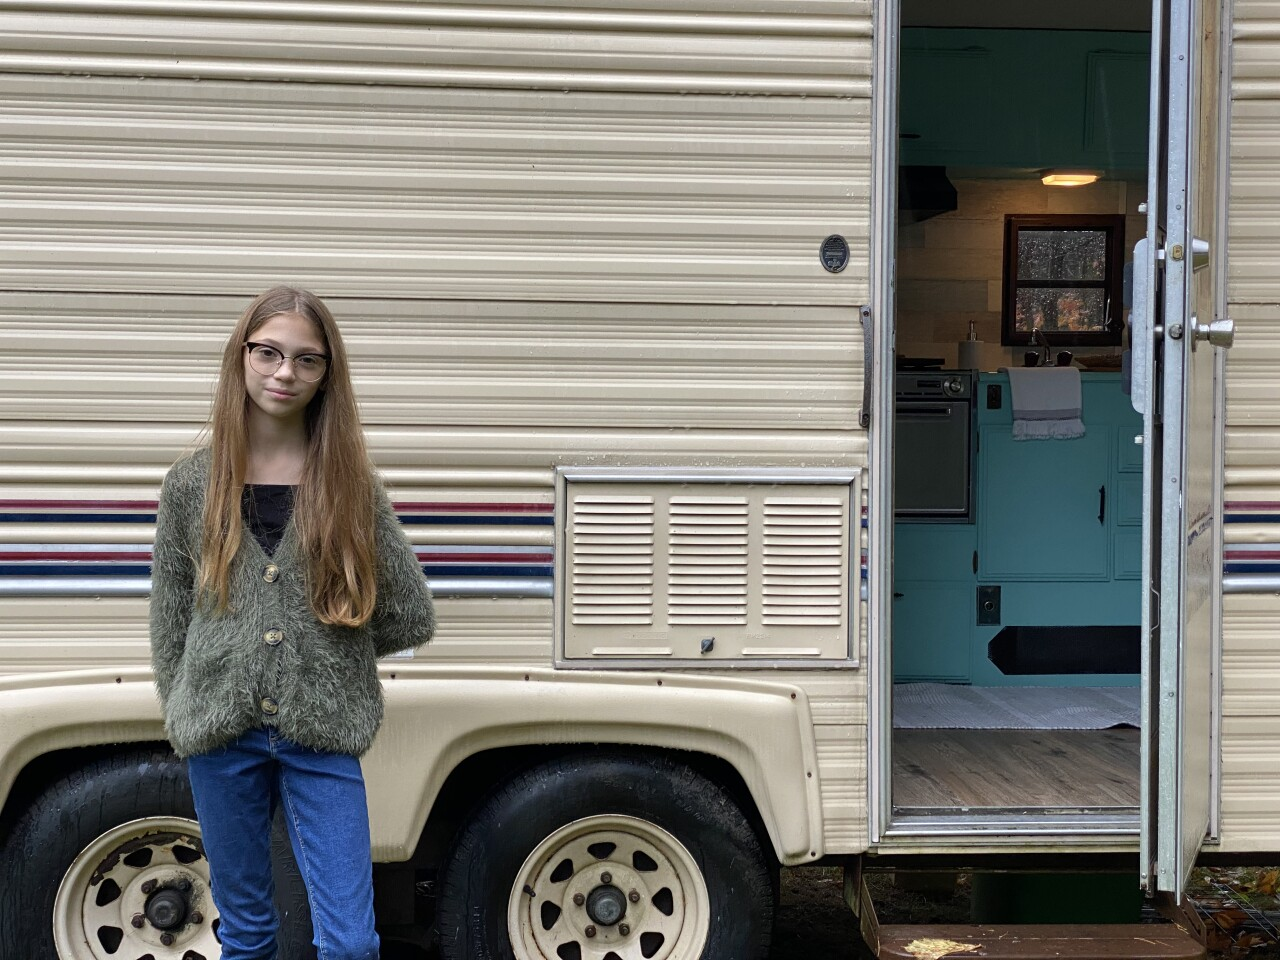 Lauren Nelson's camper got her calls from news outlets around the country